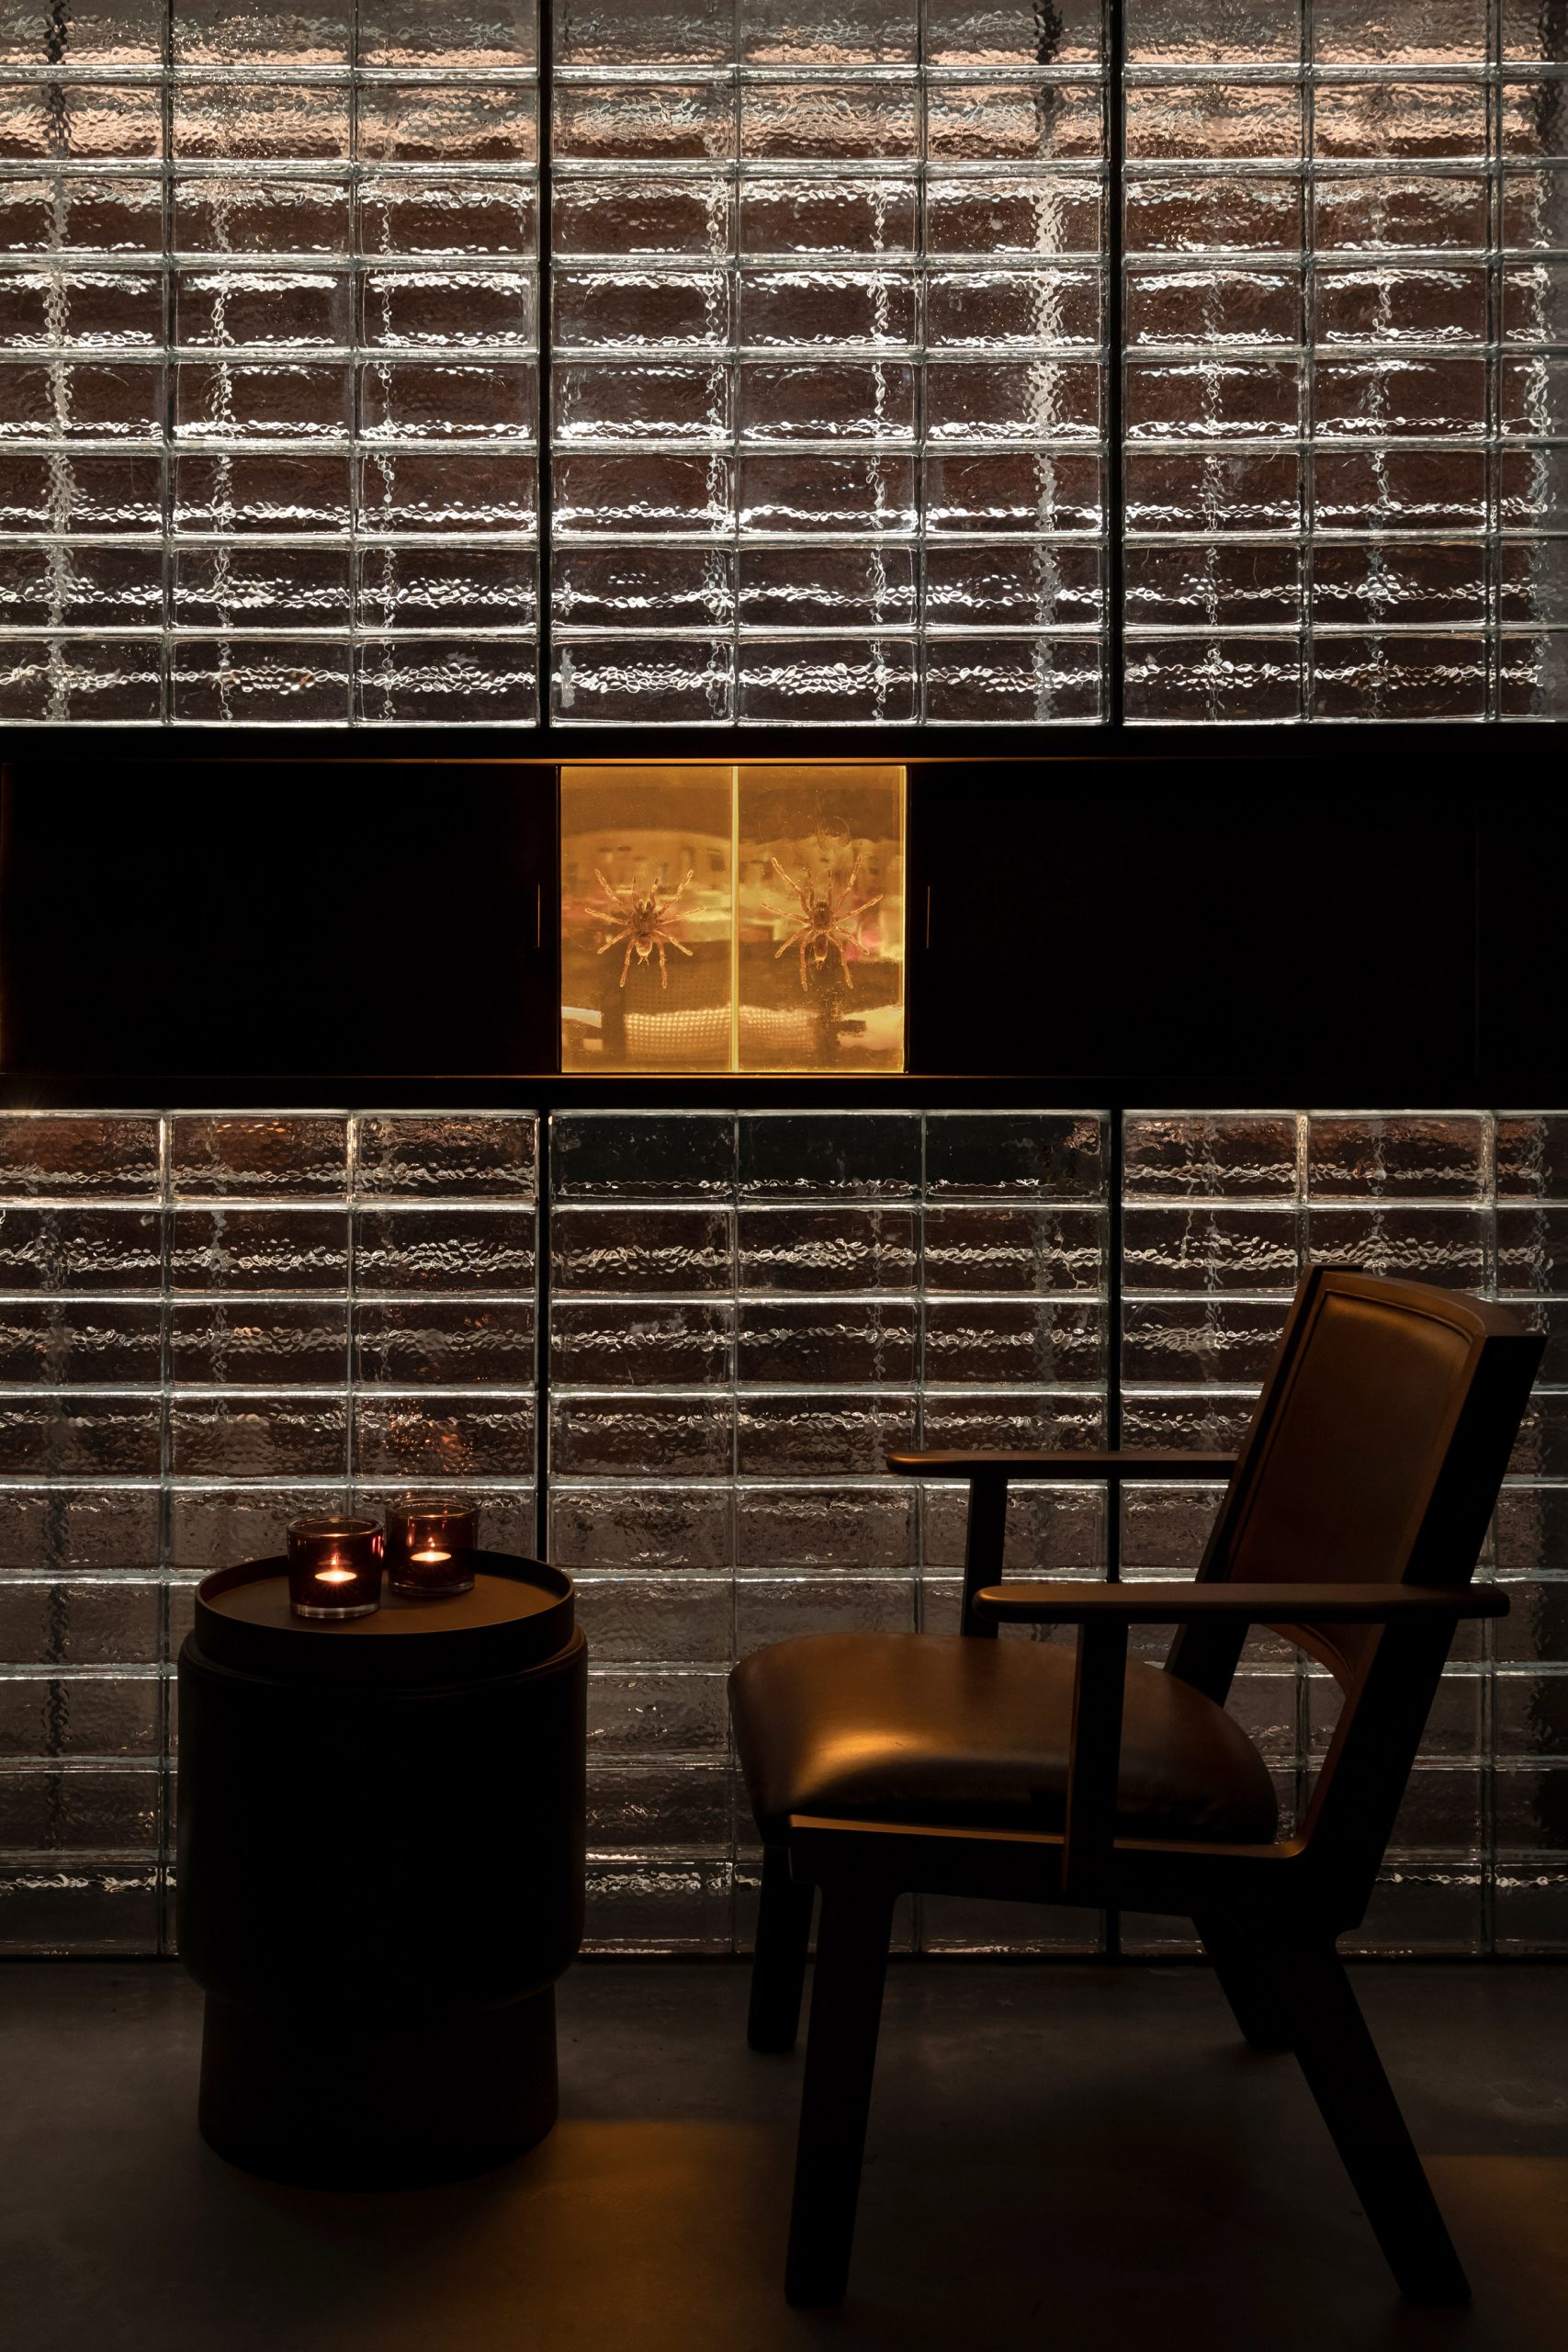 Glass wall contains preserved spiders in J Boroski bar in Shanghai by Atelier XY